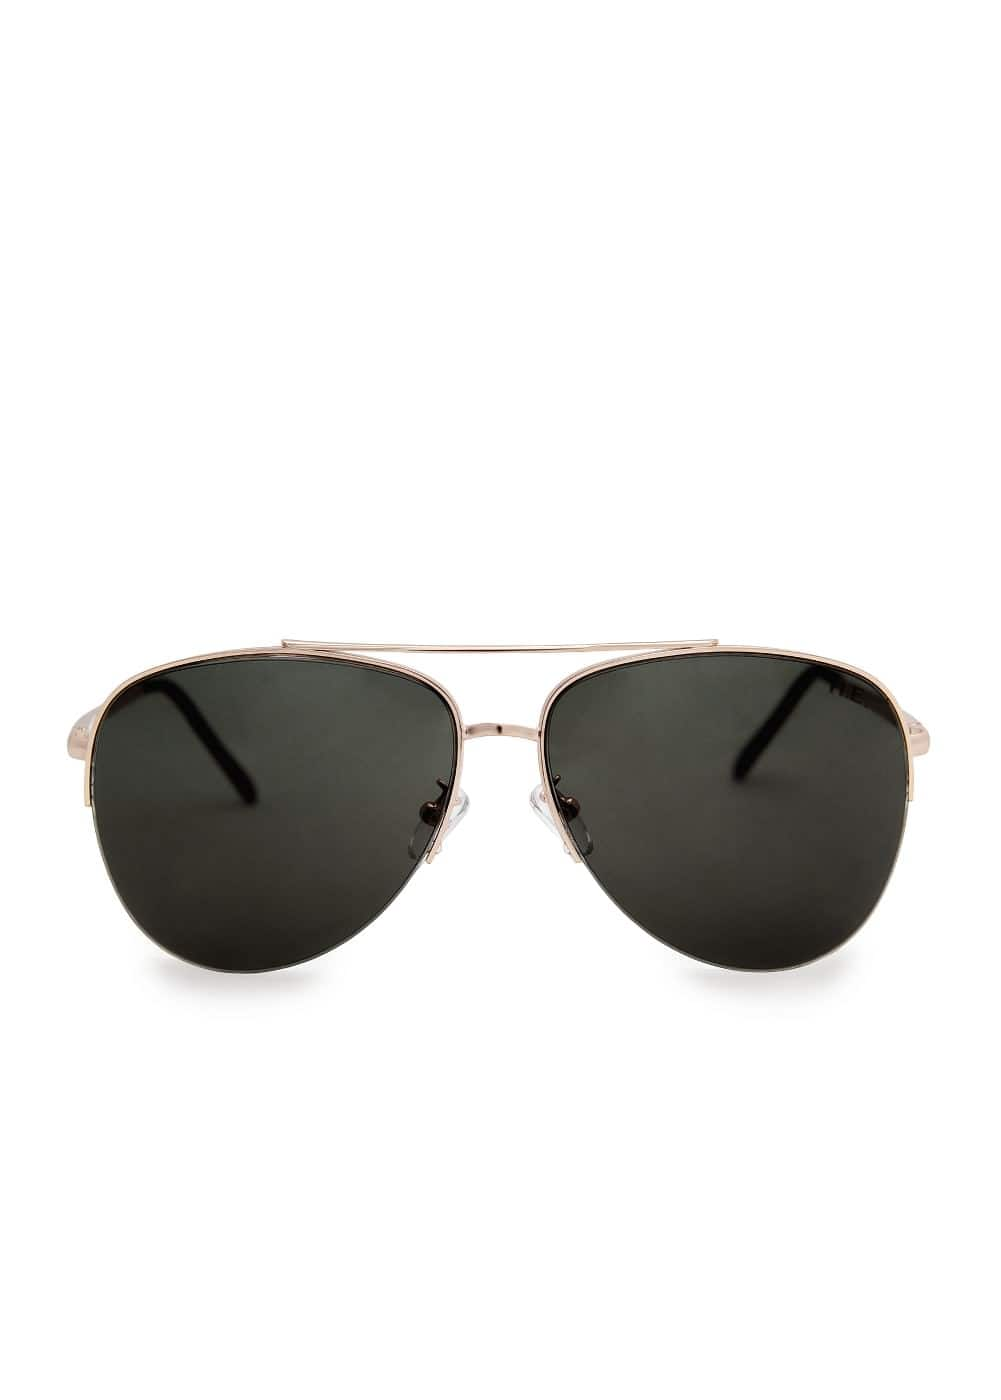 METALLIC FRAME AVIATOR SUNGLASSES